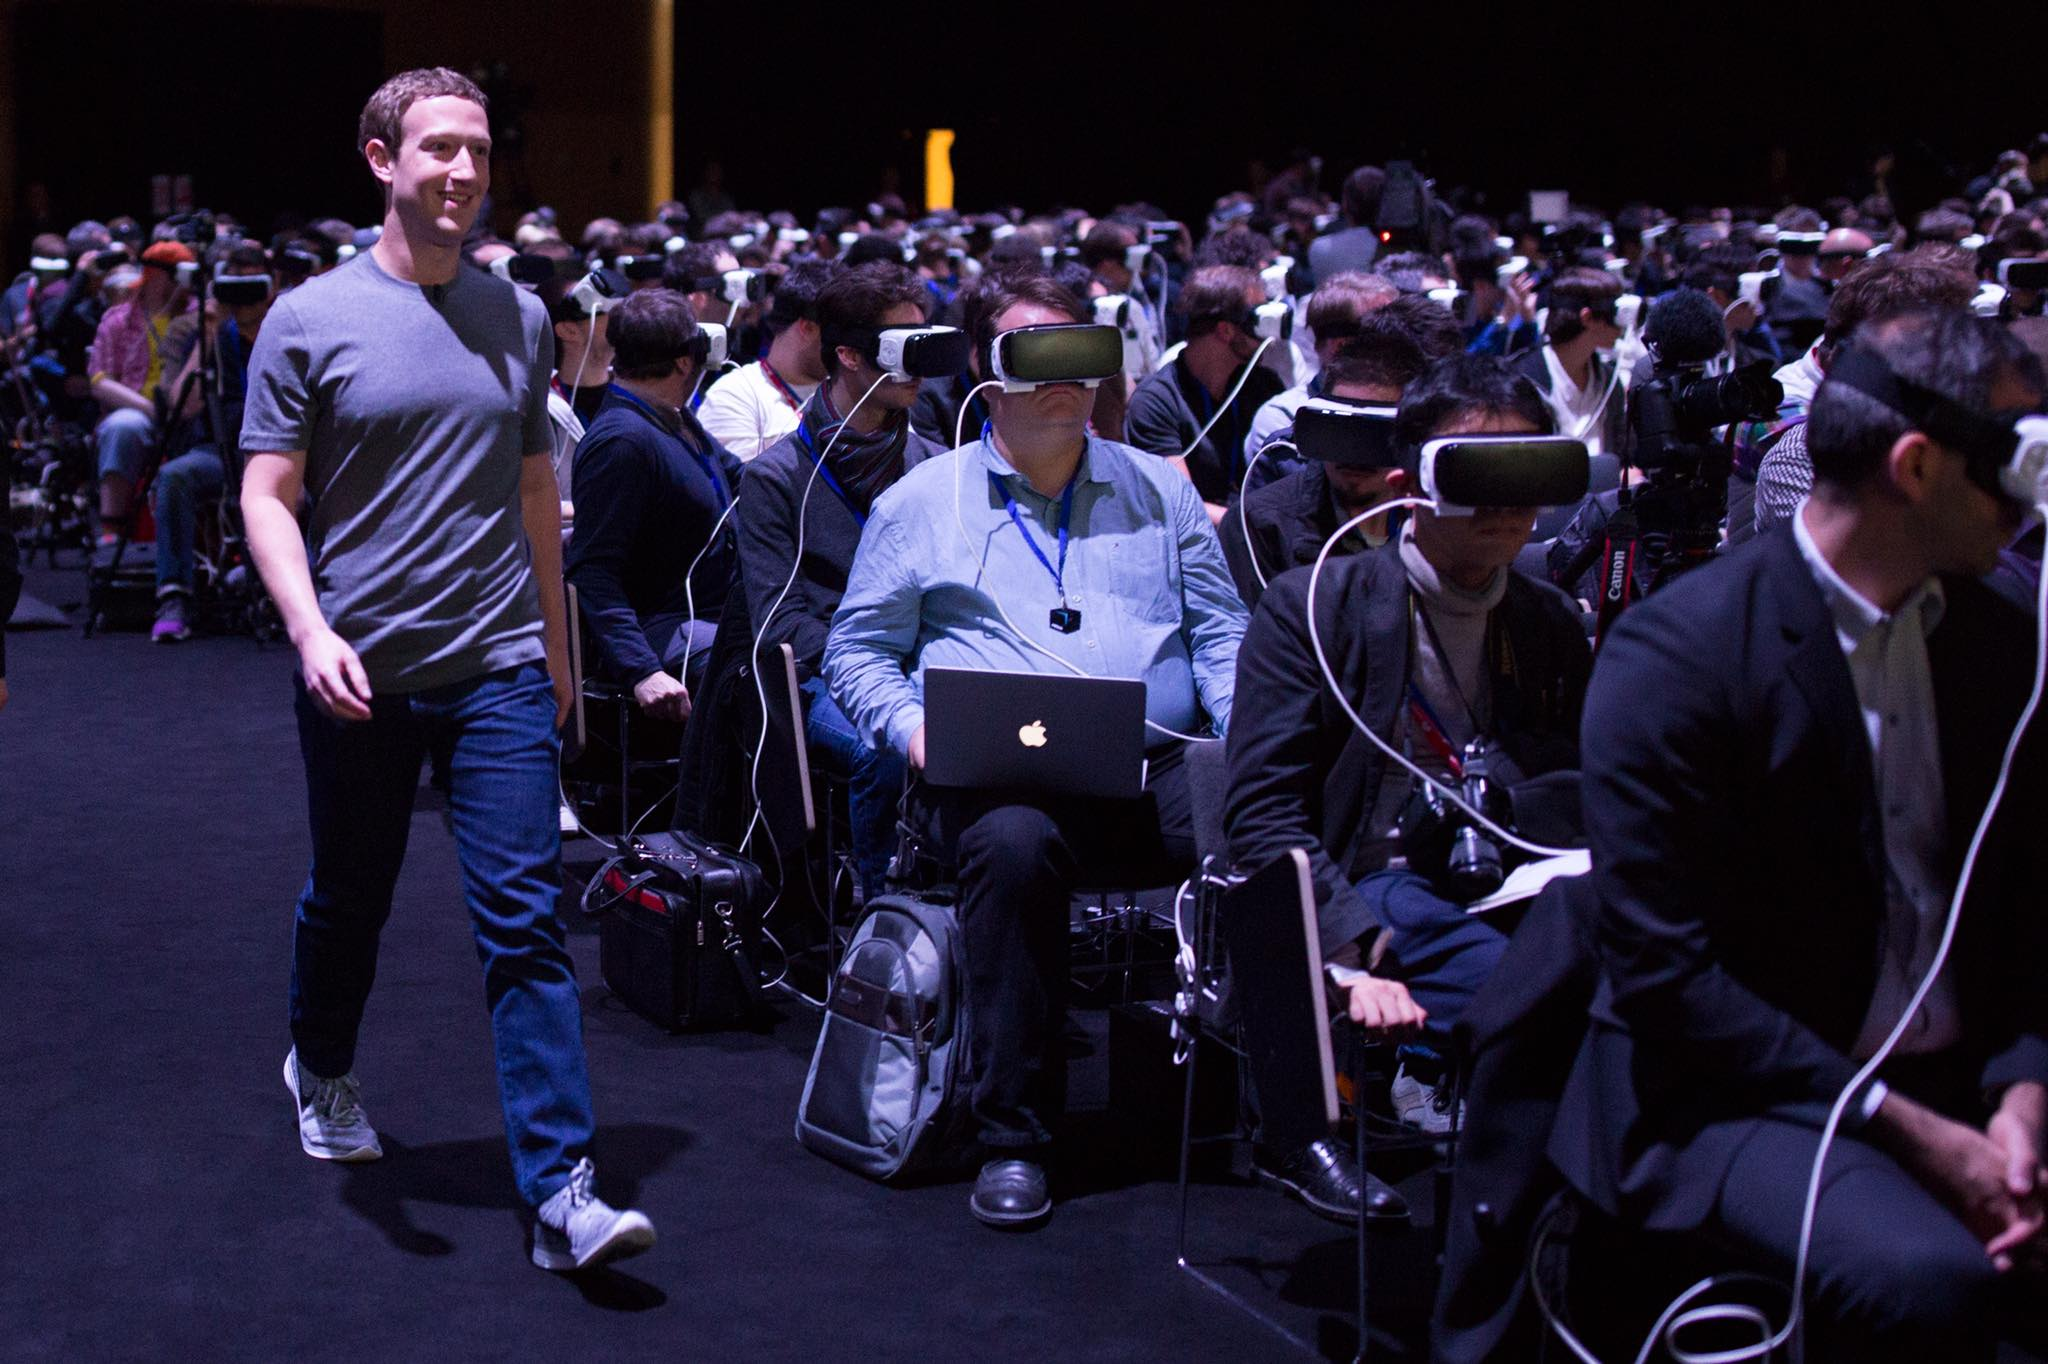 Facebook CEO Mark Zuckerberg walks to the stage during Samsung's press conference at the Mobile World Congress on February 21, 2016. Attendees viewed the presentation wearing Samsung's Gear VR headsets.